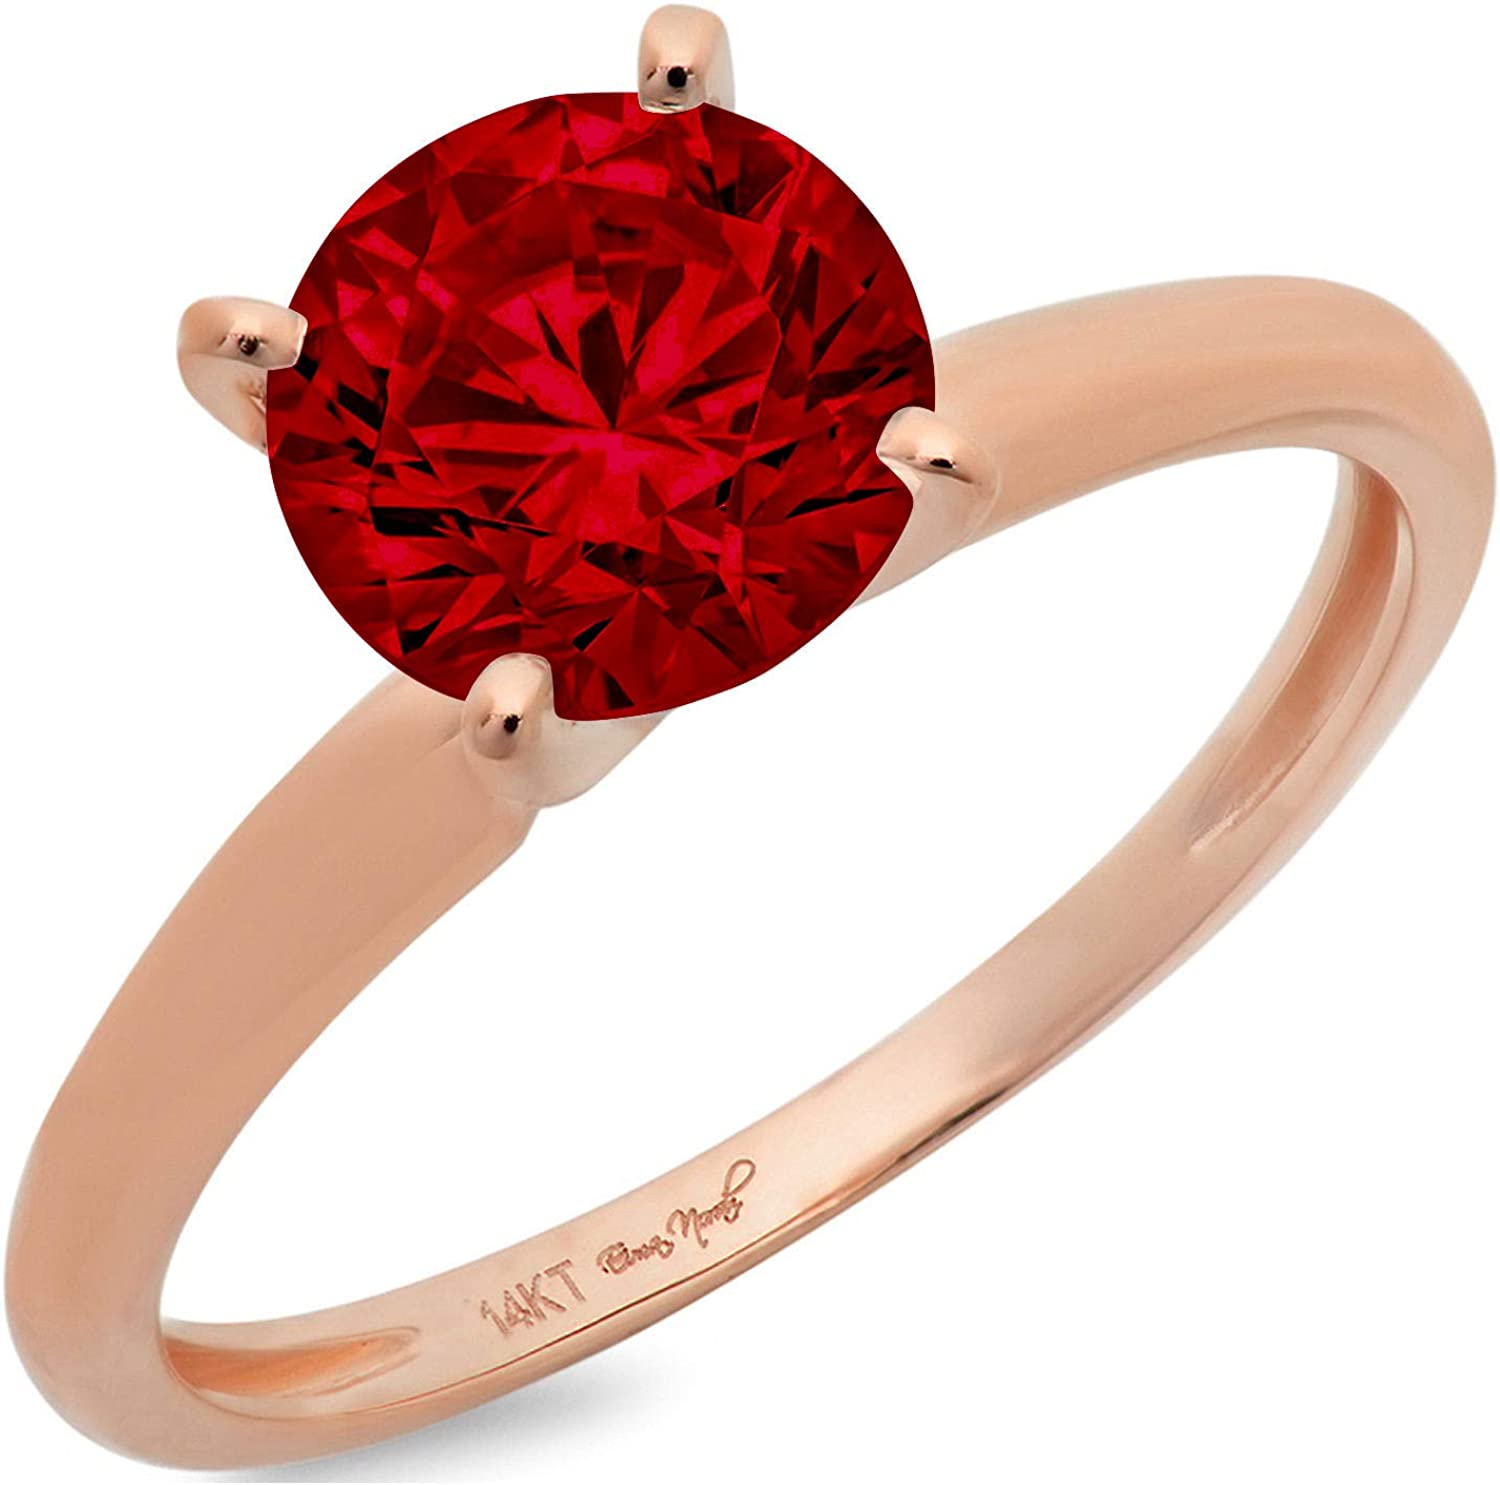 0.4ct Brilliant Round Cut Solitaire Natural Crimson Deep Red Garnet Ideal VVS1 4-Prong Engagement Wedding Bridal Promise Anniversary Ring in Solid 14k Rose Gold for Women